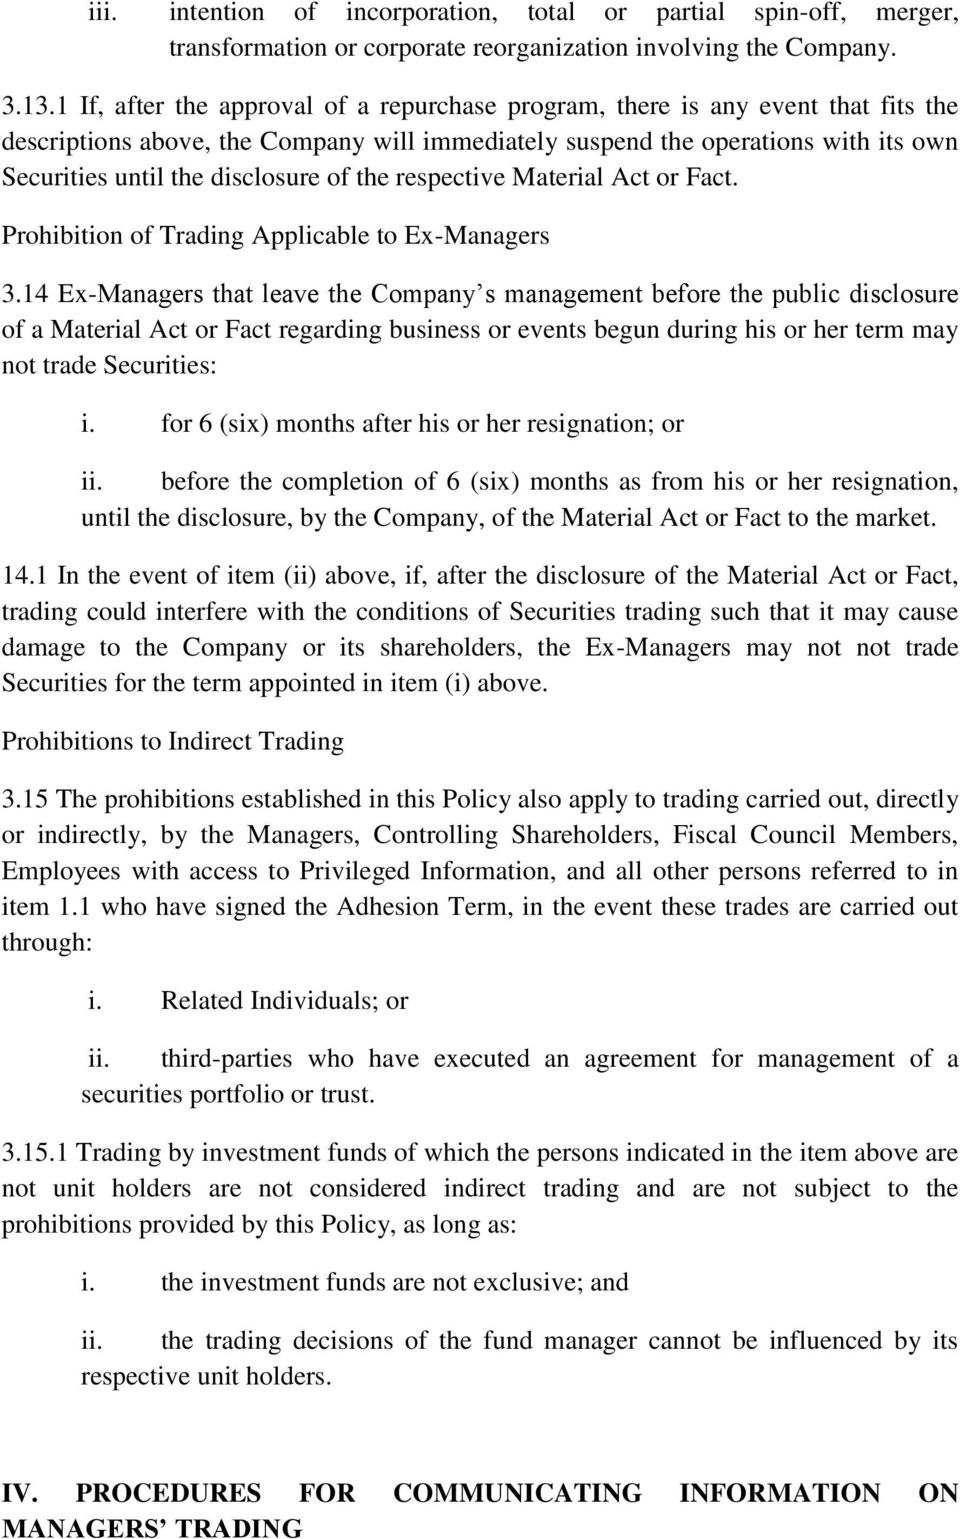 of the respective Material Act or Fact. Prohibition of Trading Applicable to Ex-Managers 3.